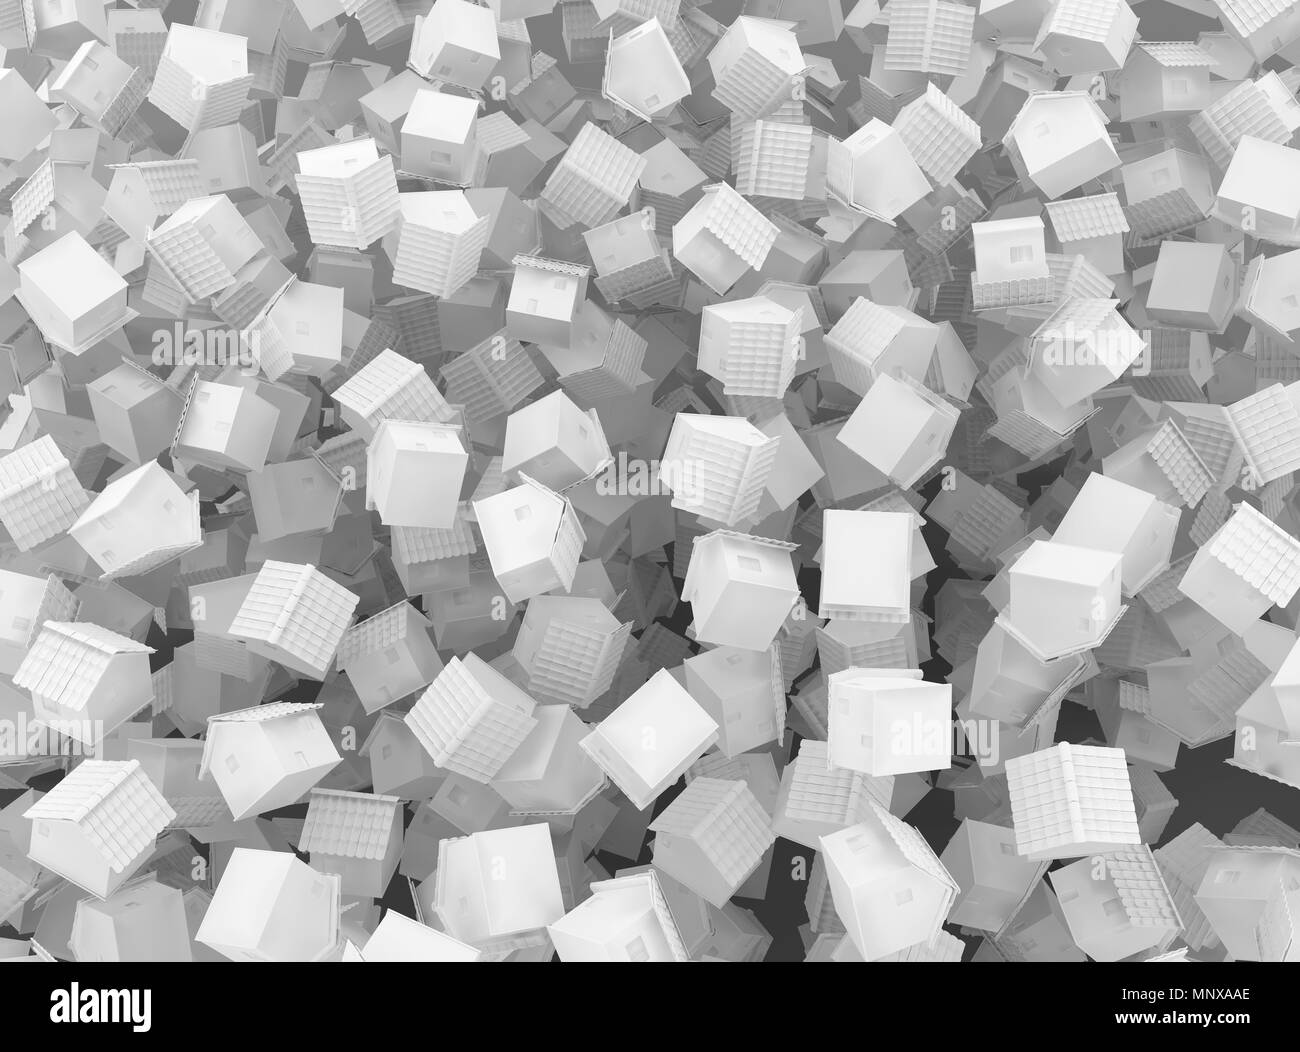 Small white cottages chaotic scatter, 3d illustration, background horizontal - Stock Image